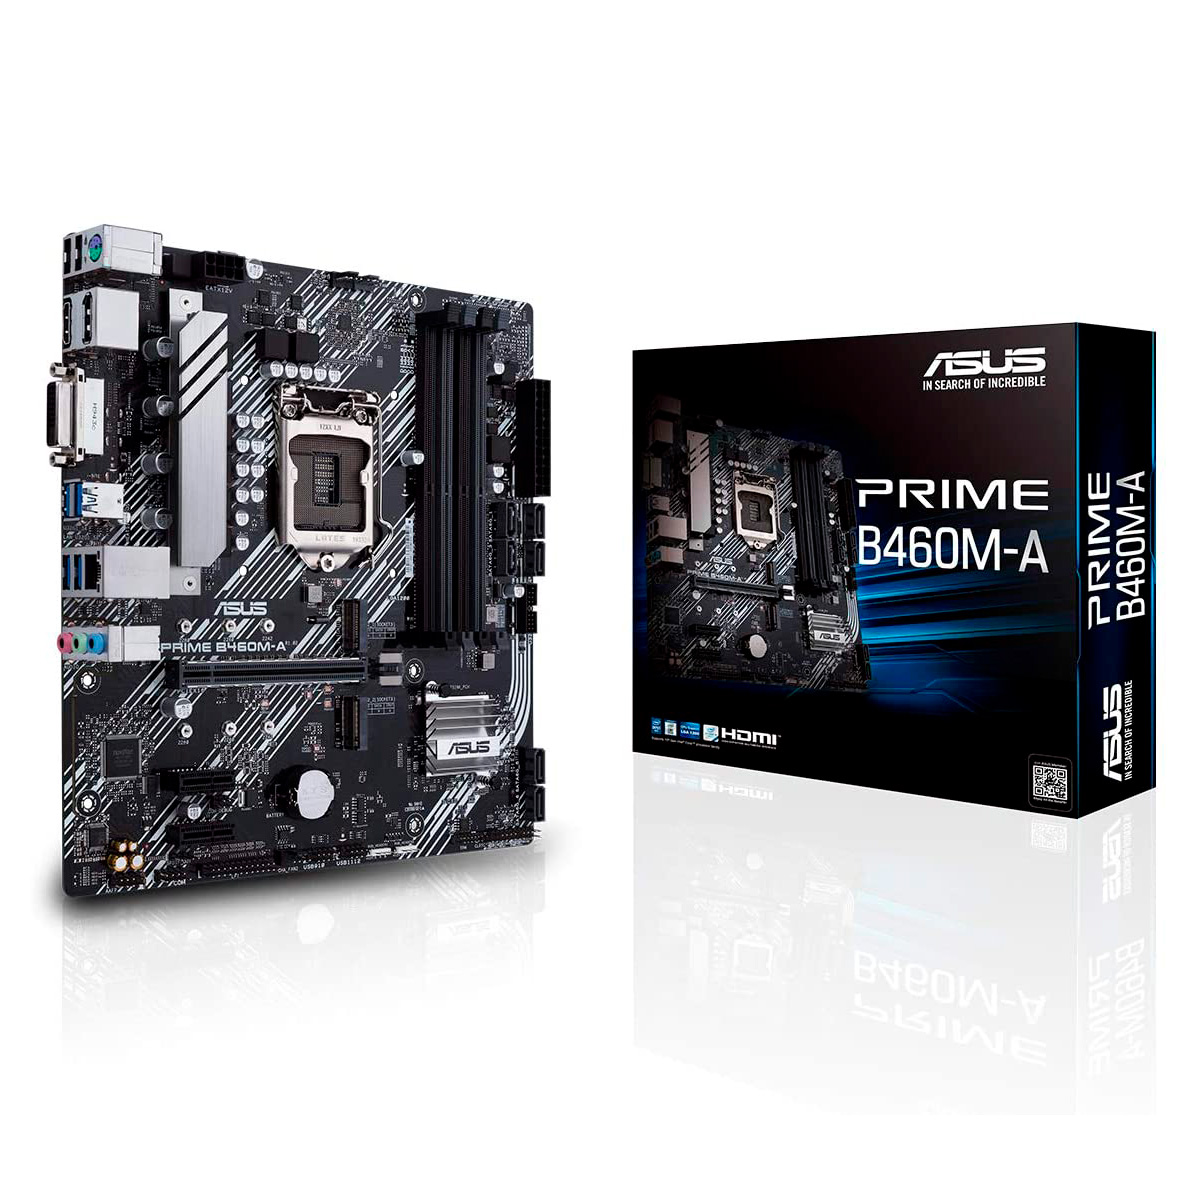 MOTHER B460M-A PRIME ASUS